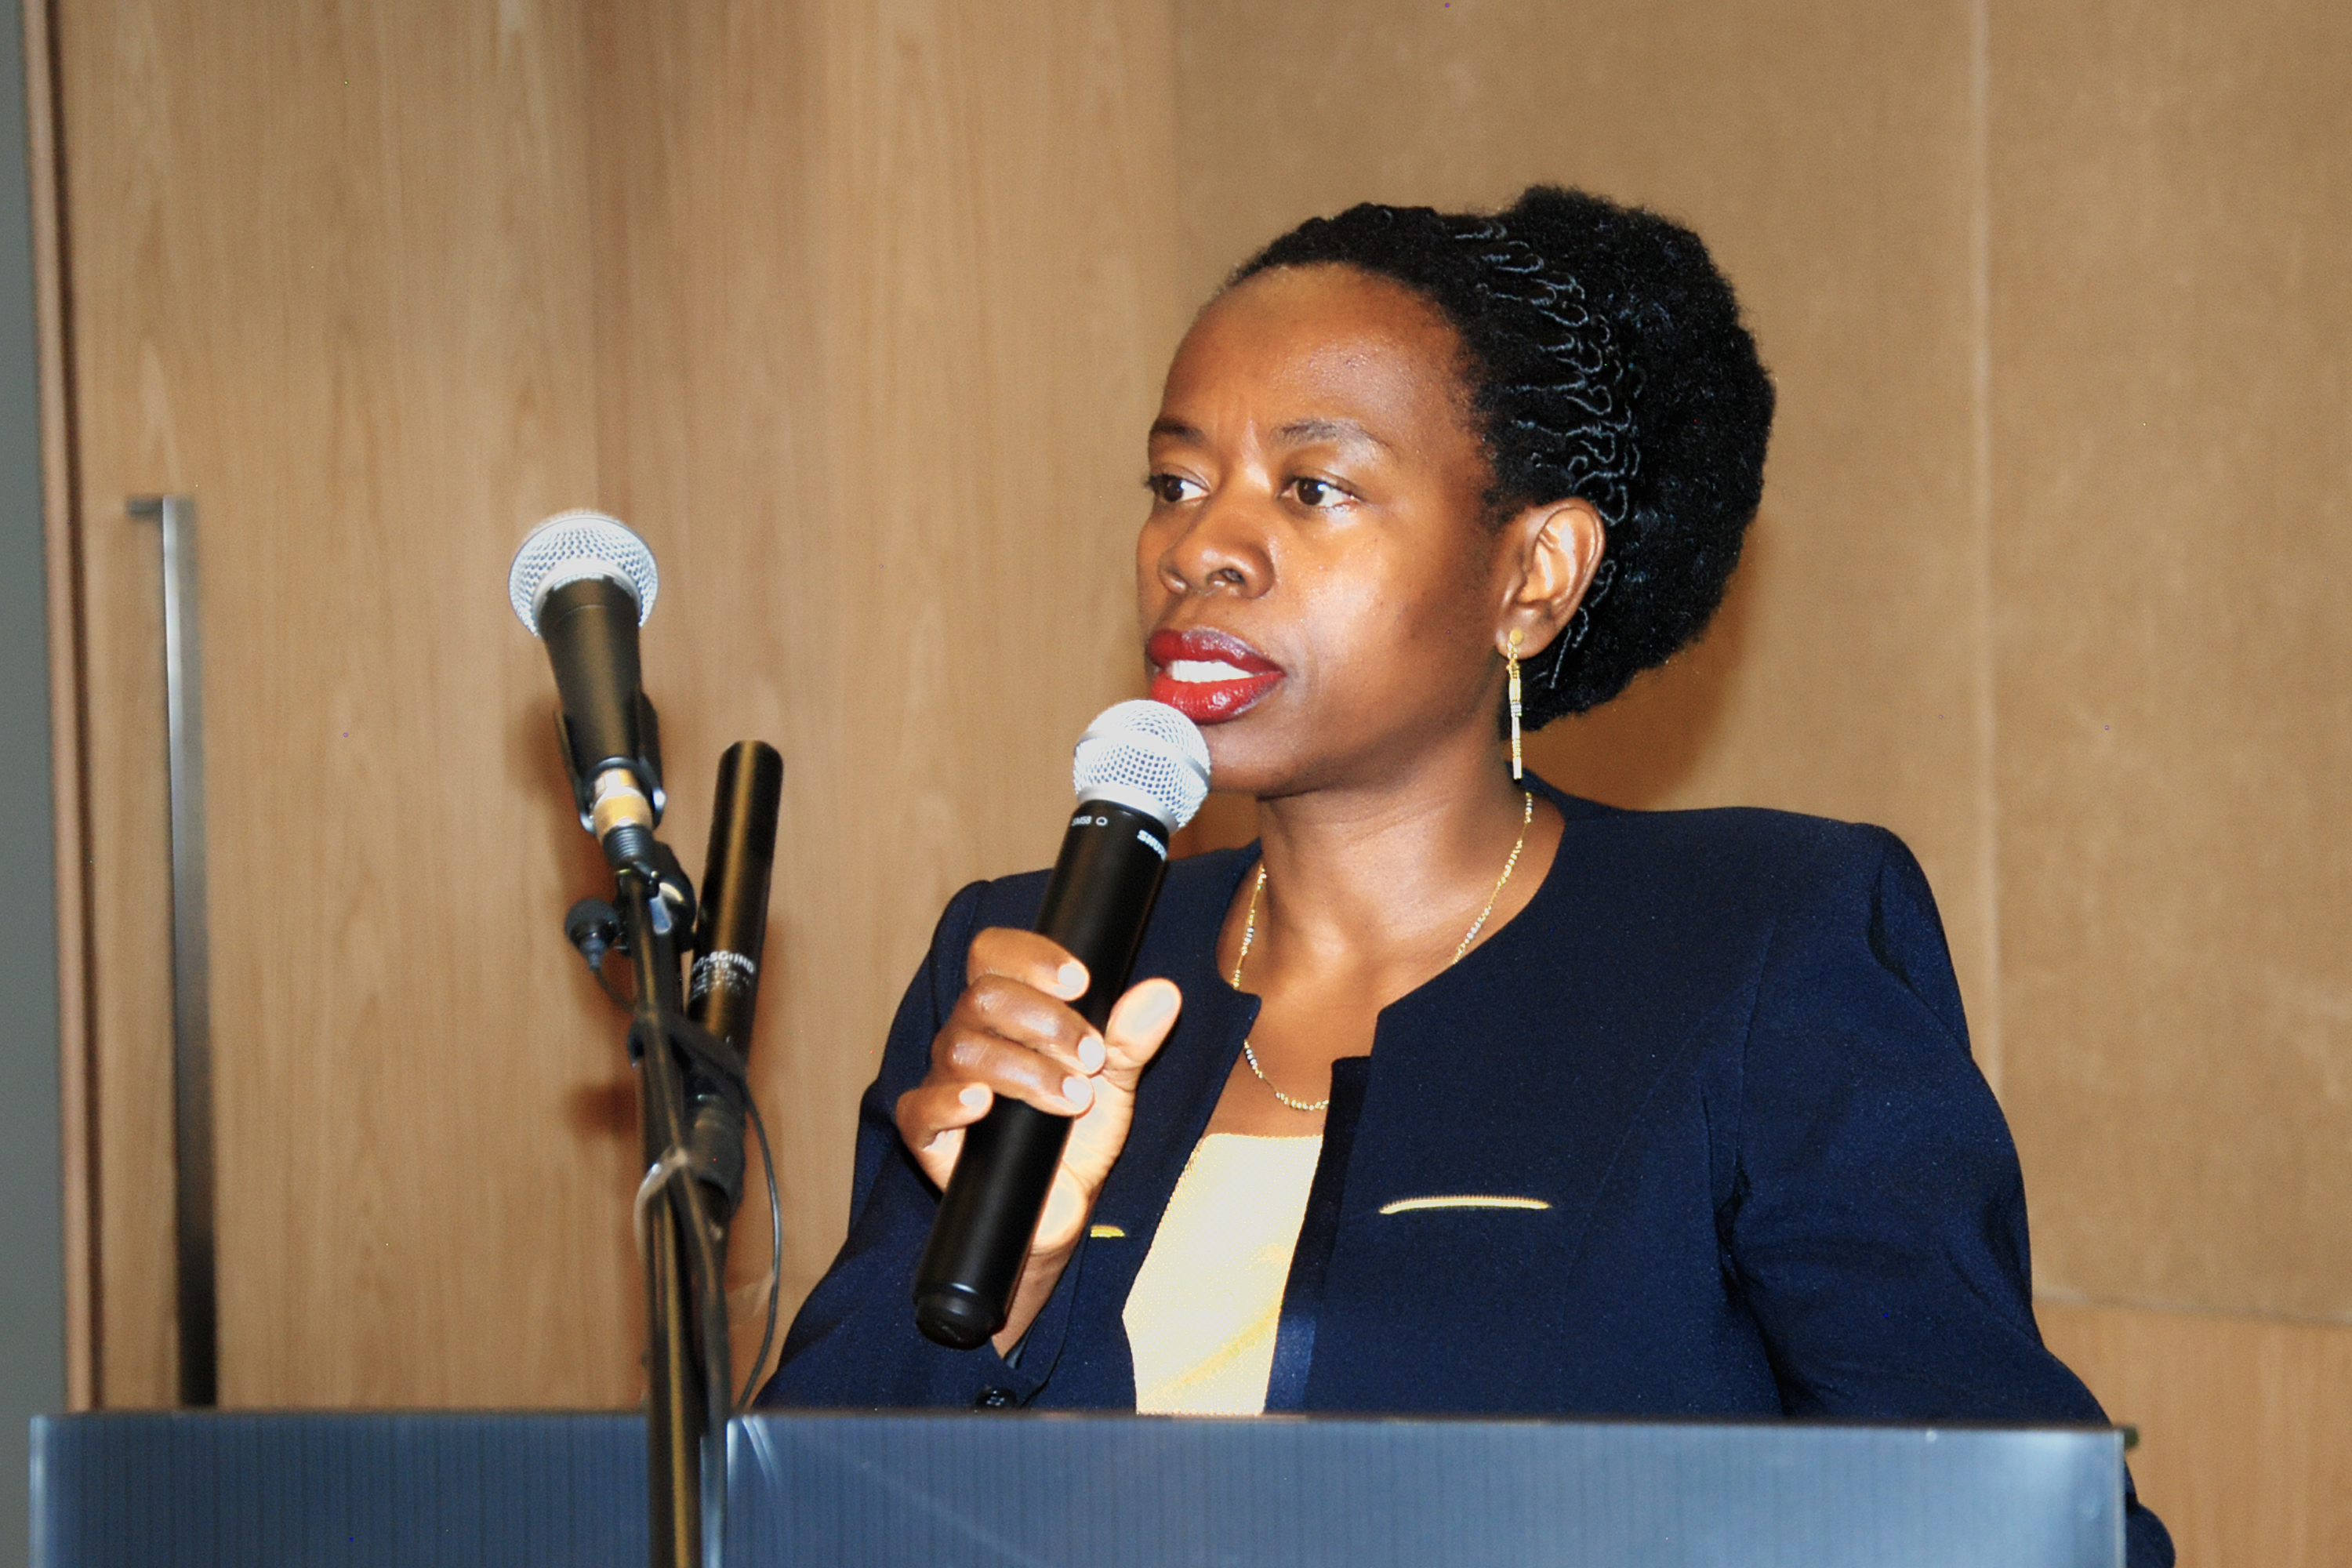 BNR Vice Governor, Monique Nsanzabaganwa makes her remarks this morning